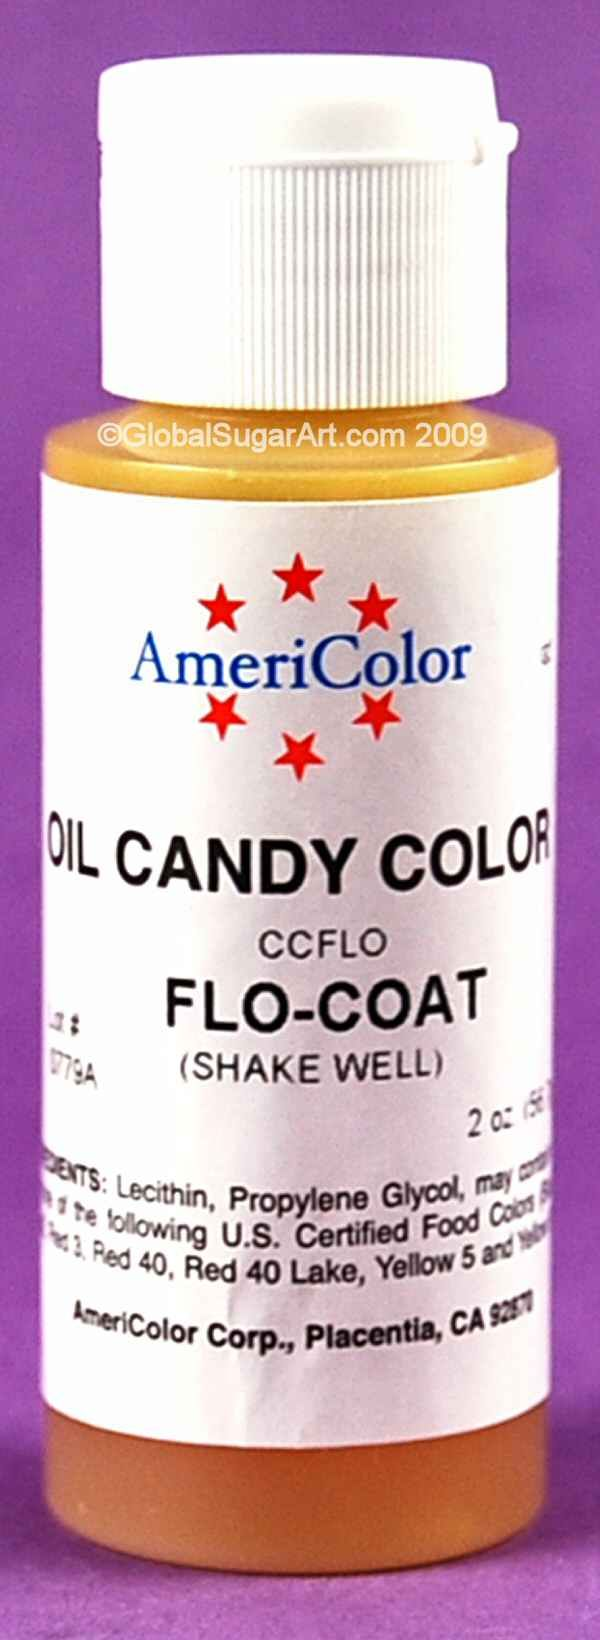 FLO-COAT Oil-Based Candy Color (2 ounces) by Americolor - Flo-coat ...